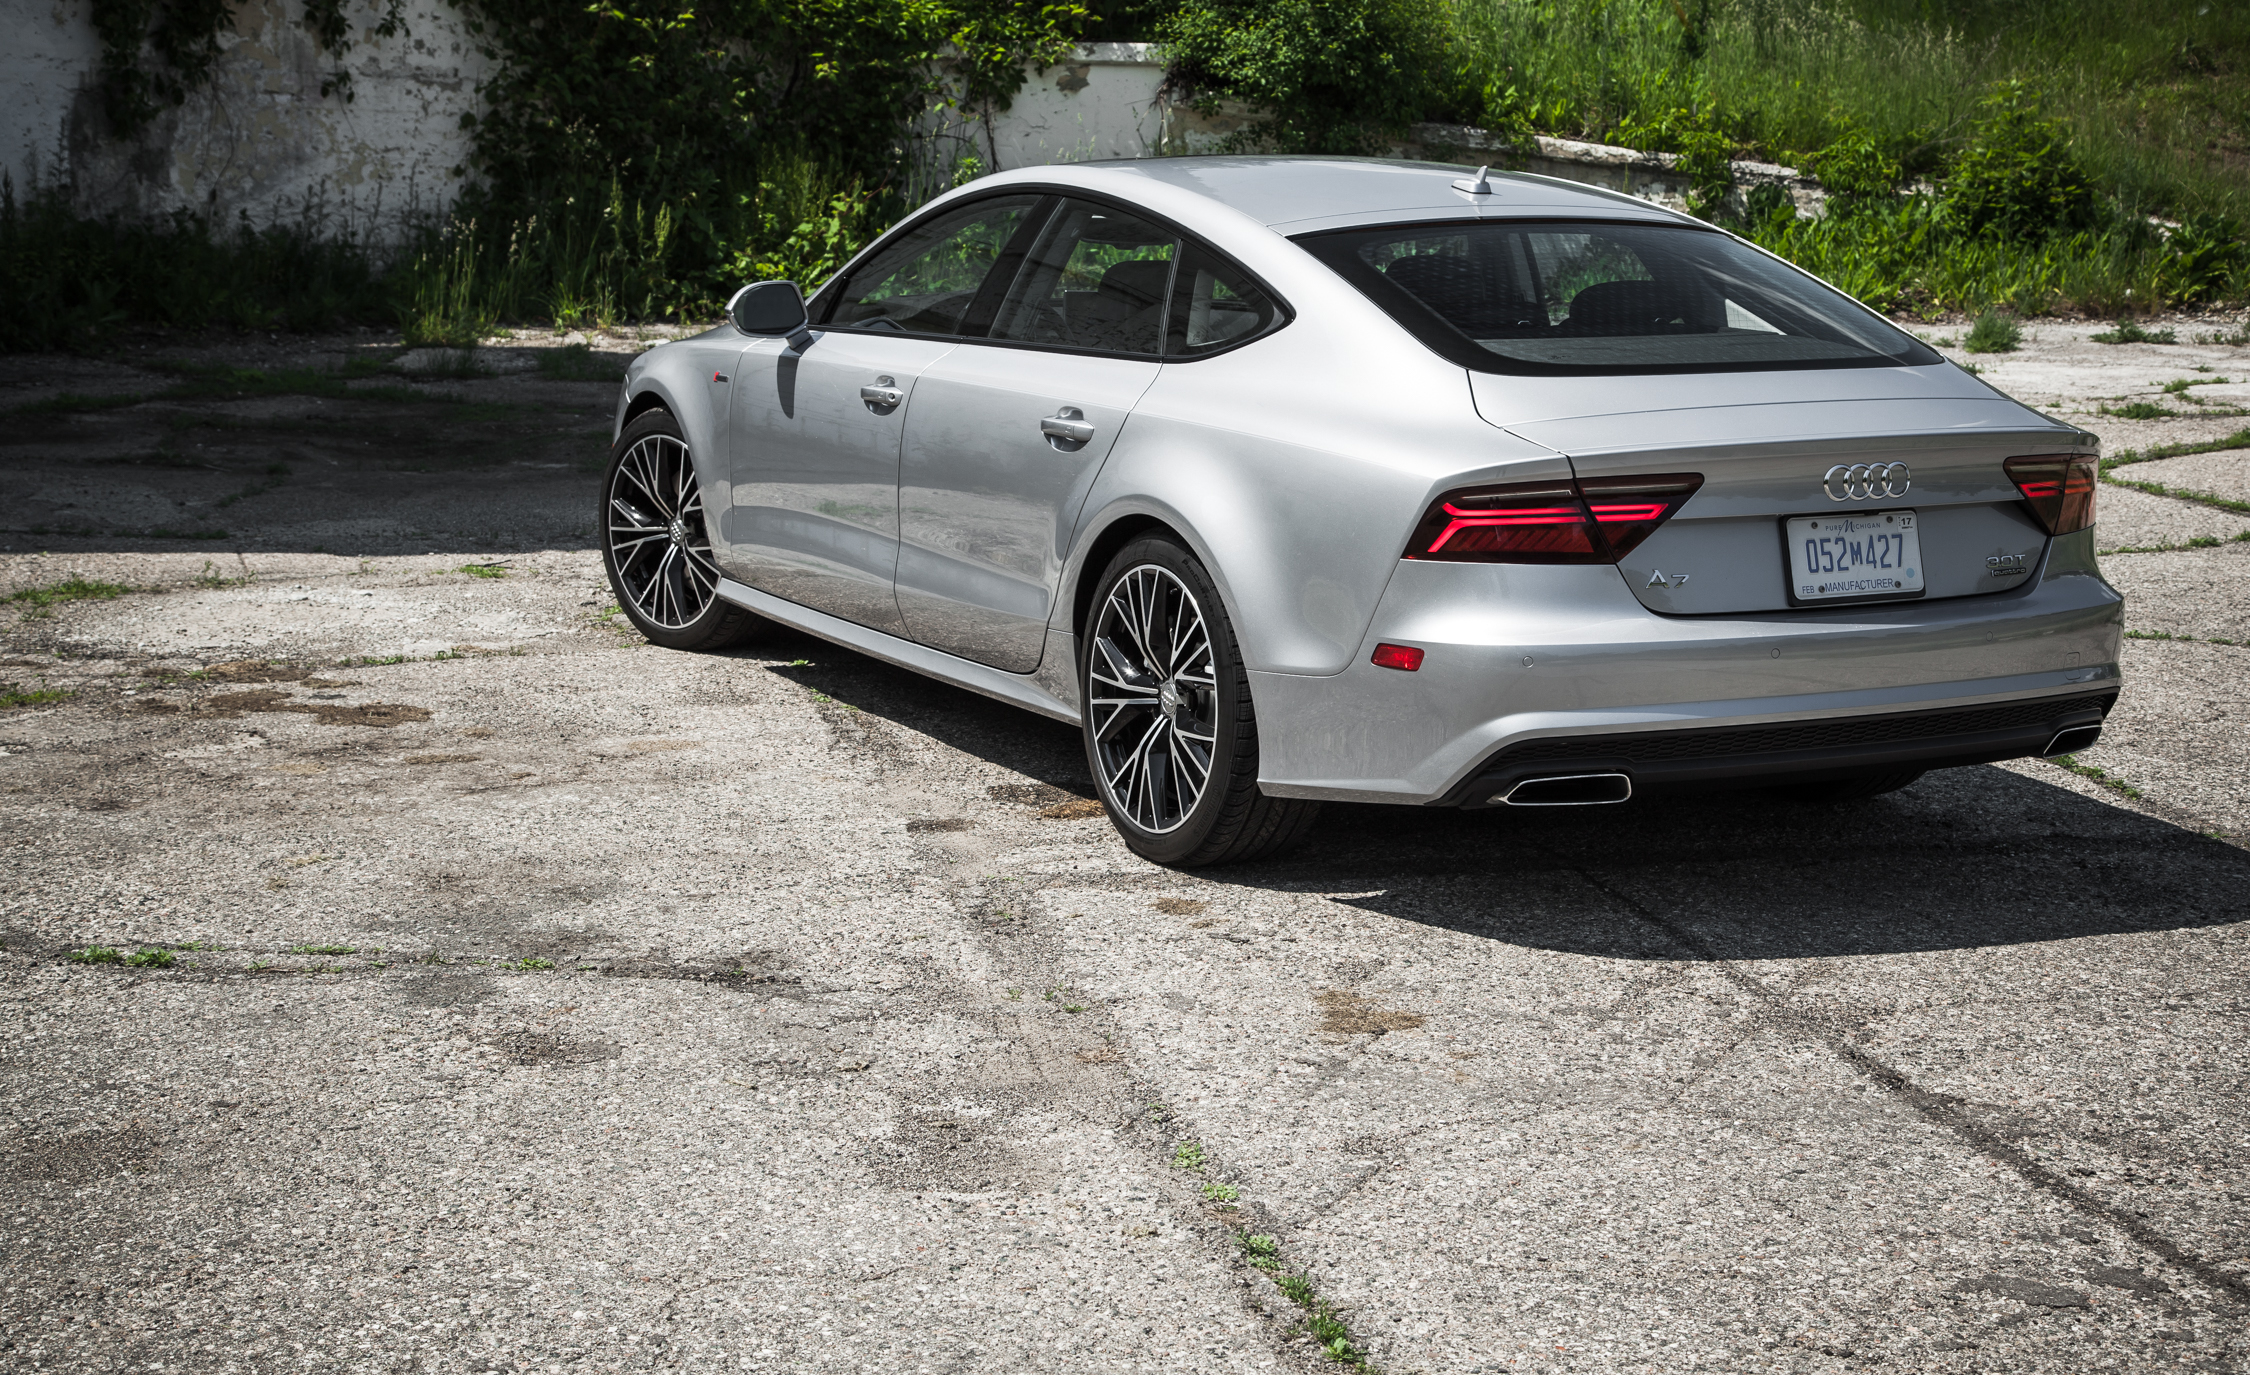 2016 Audi A7 Exterior Rear (Photo 19 of 26)